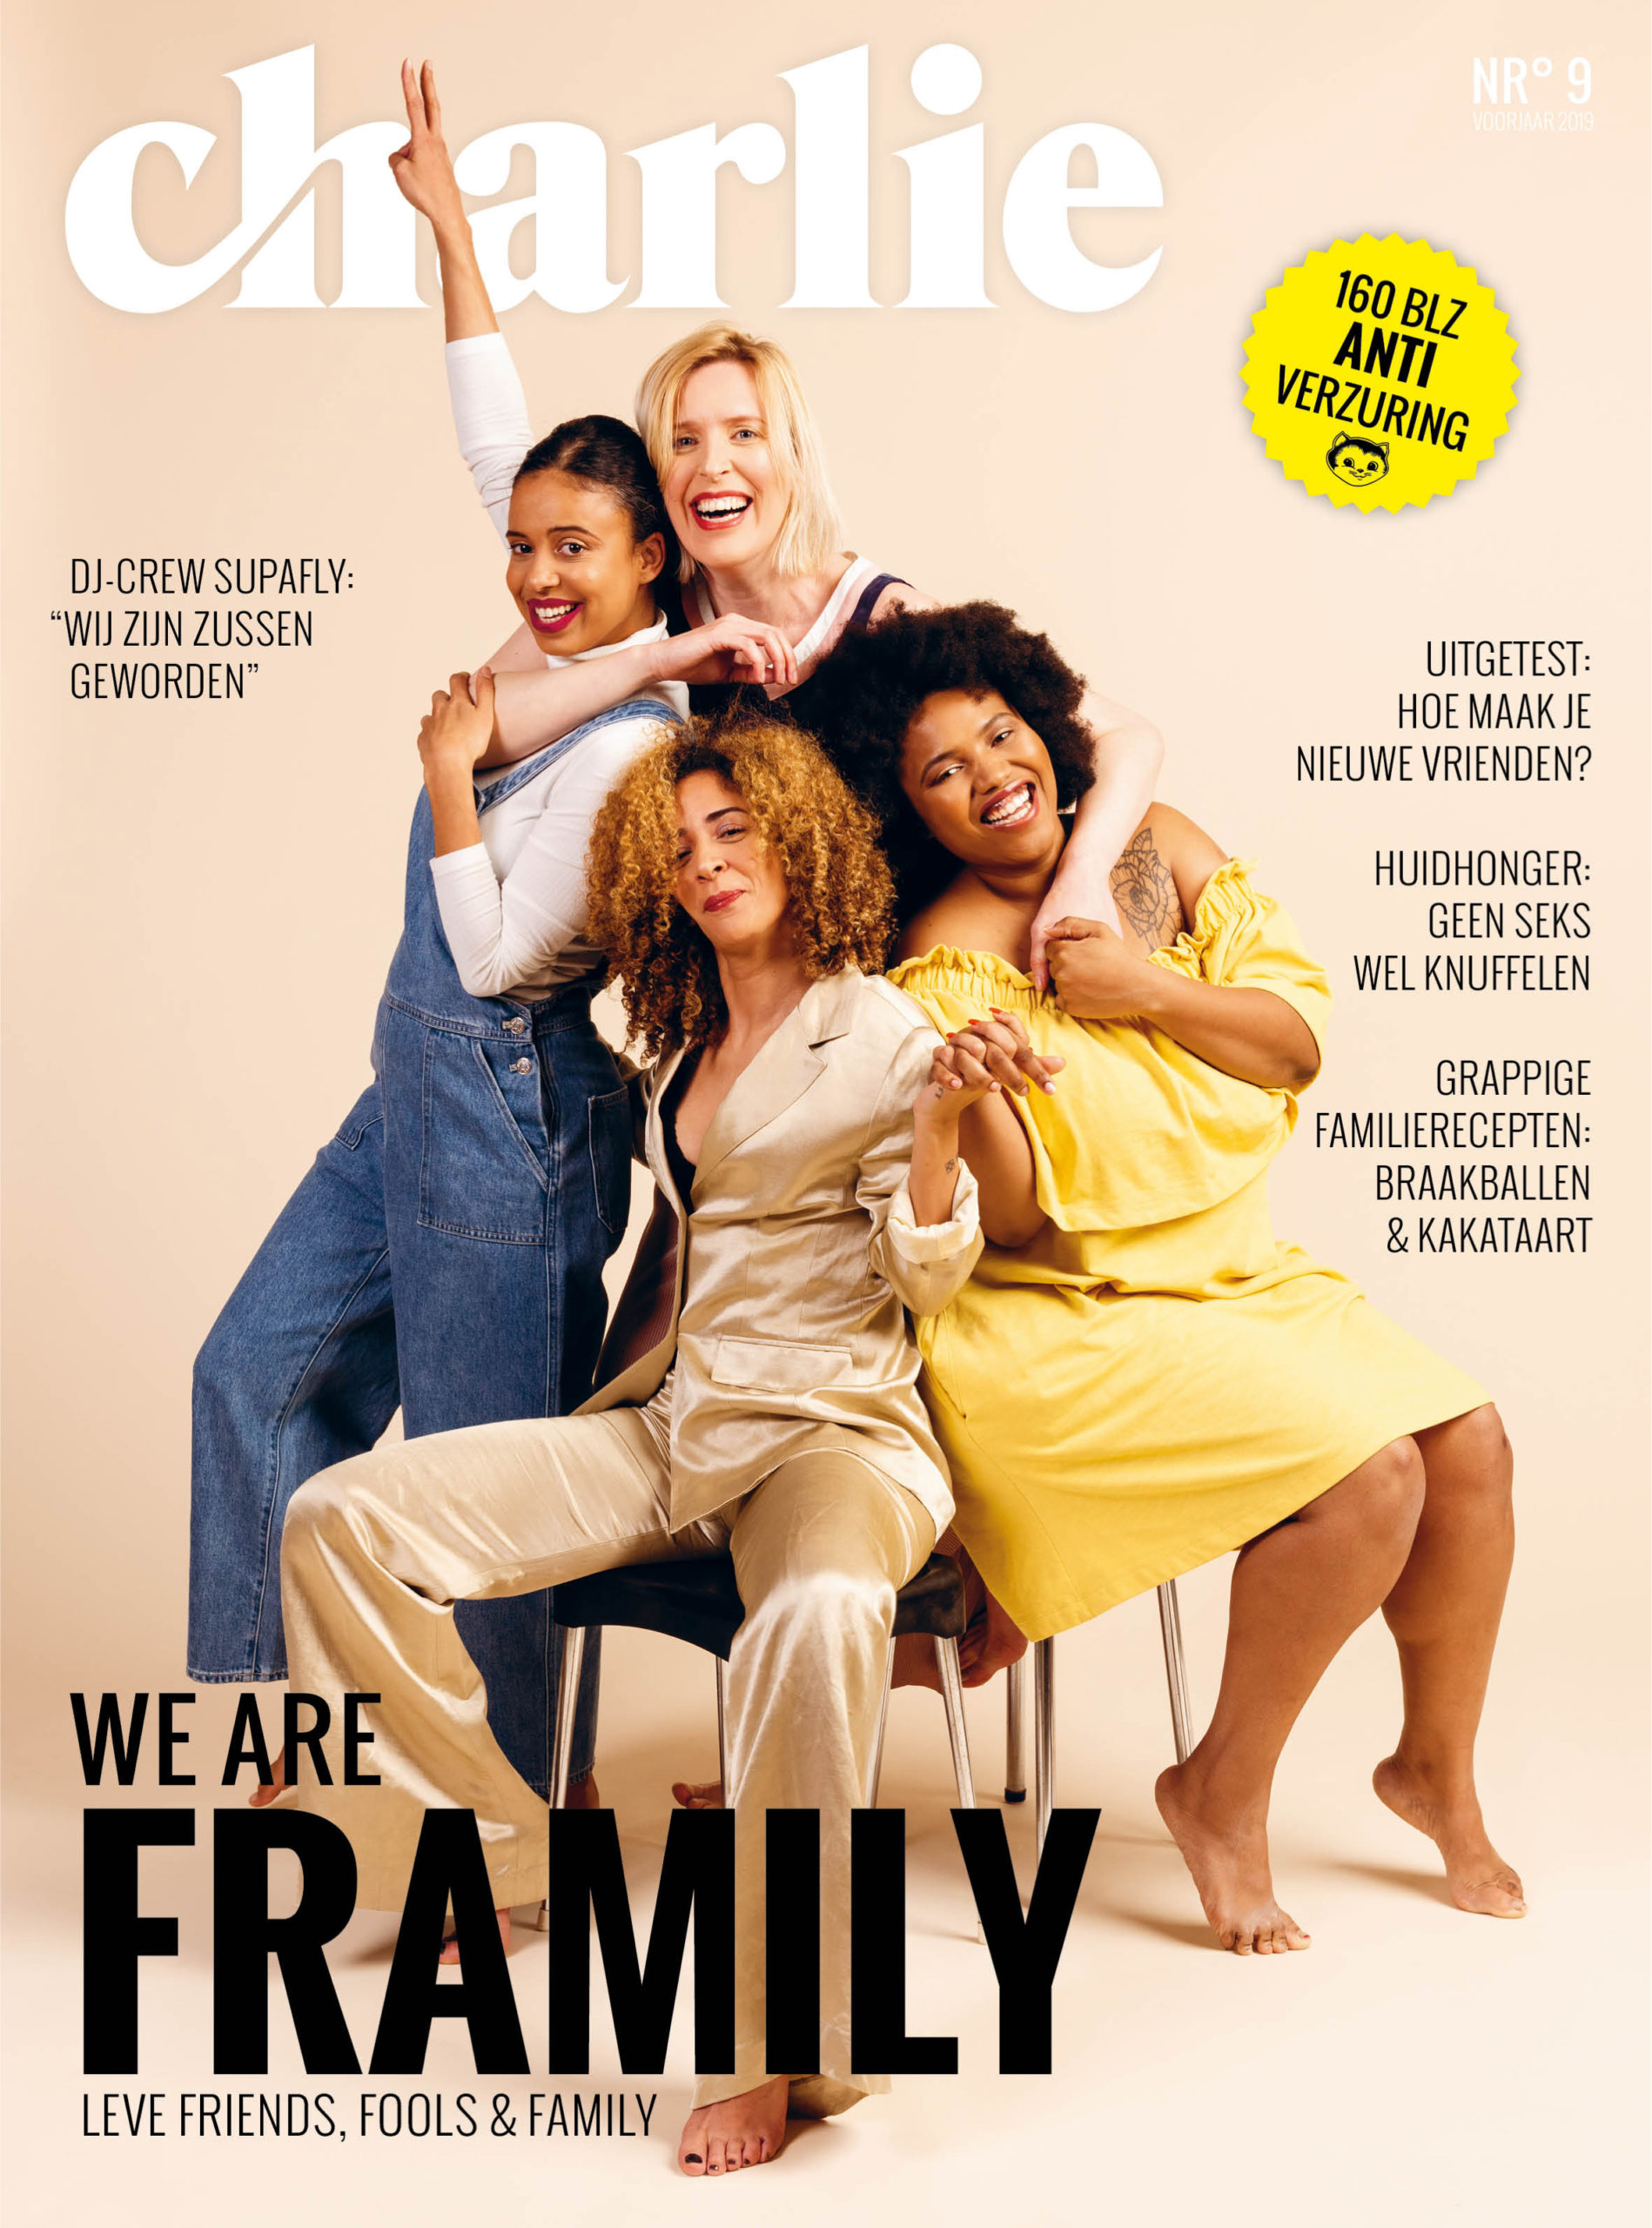 Charlie Magazine nr 09 - We are Framily